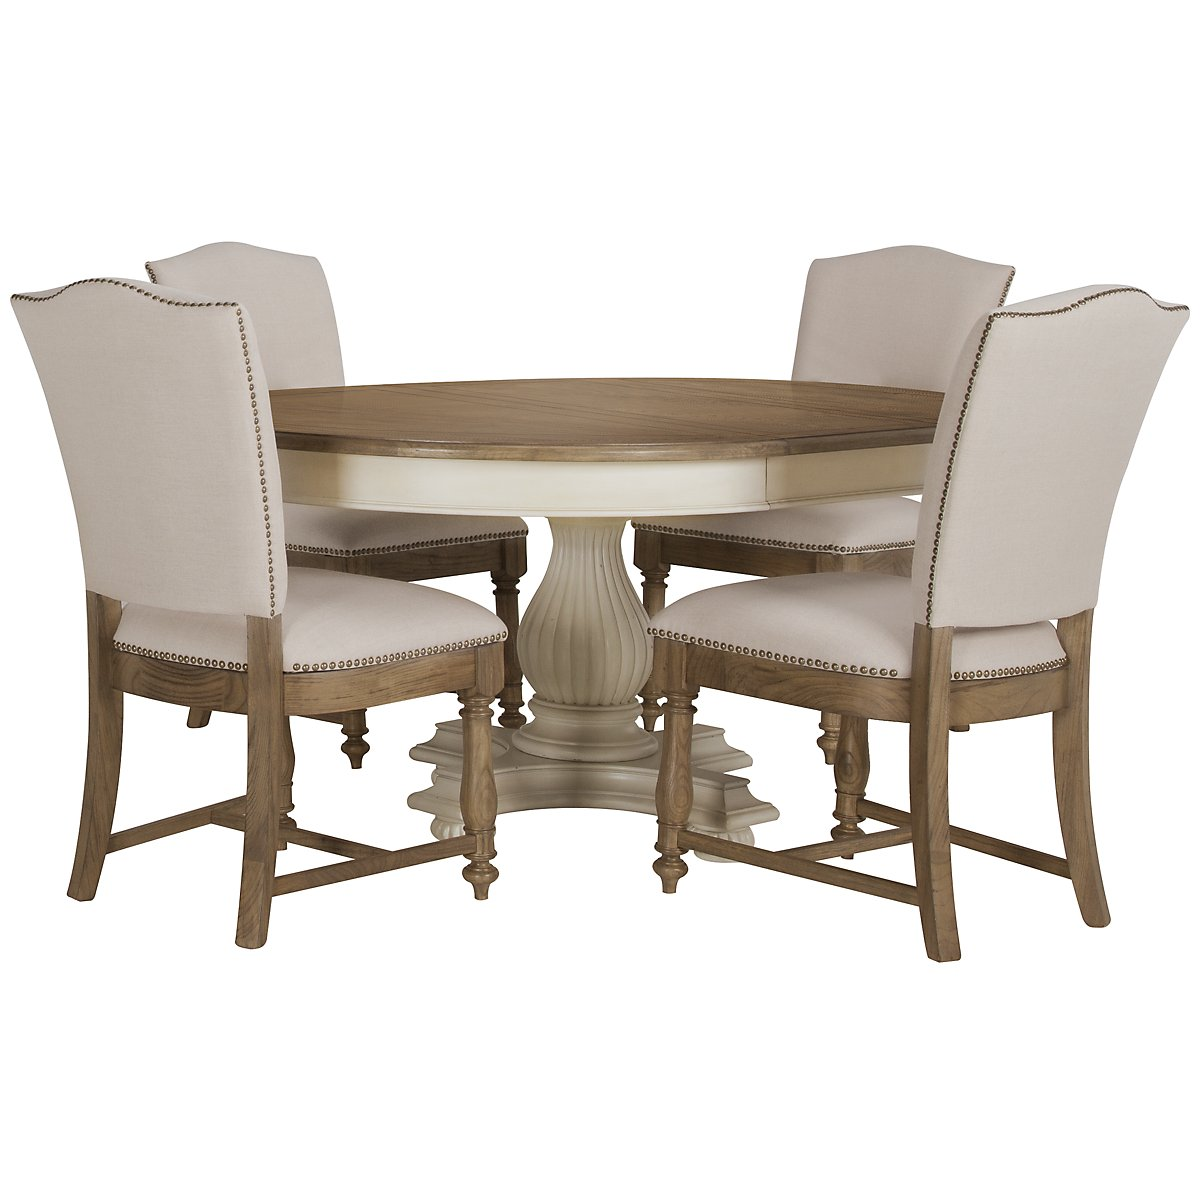 City furniture coventry two tone round table 4 for Dining room table 2